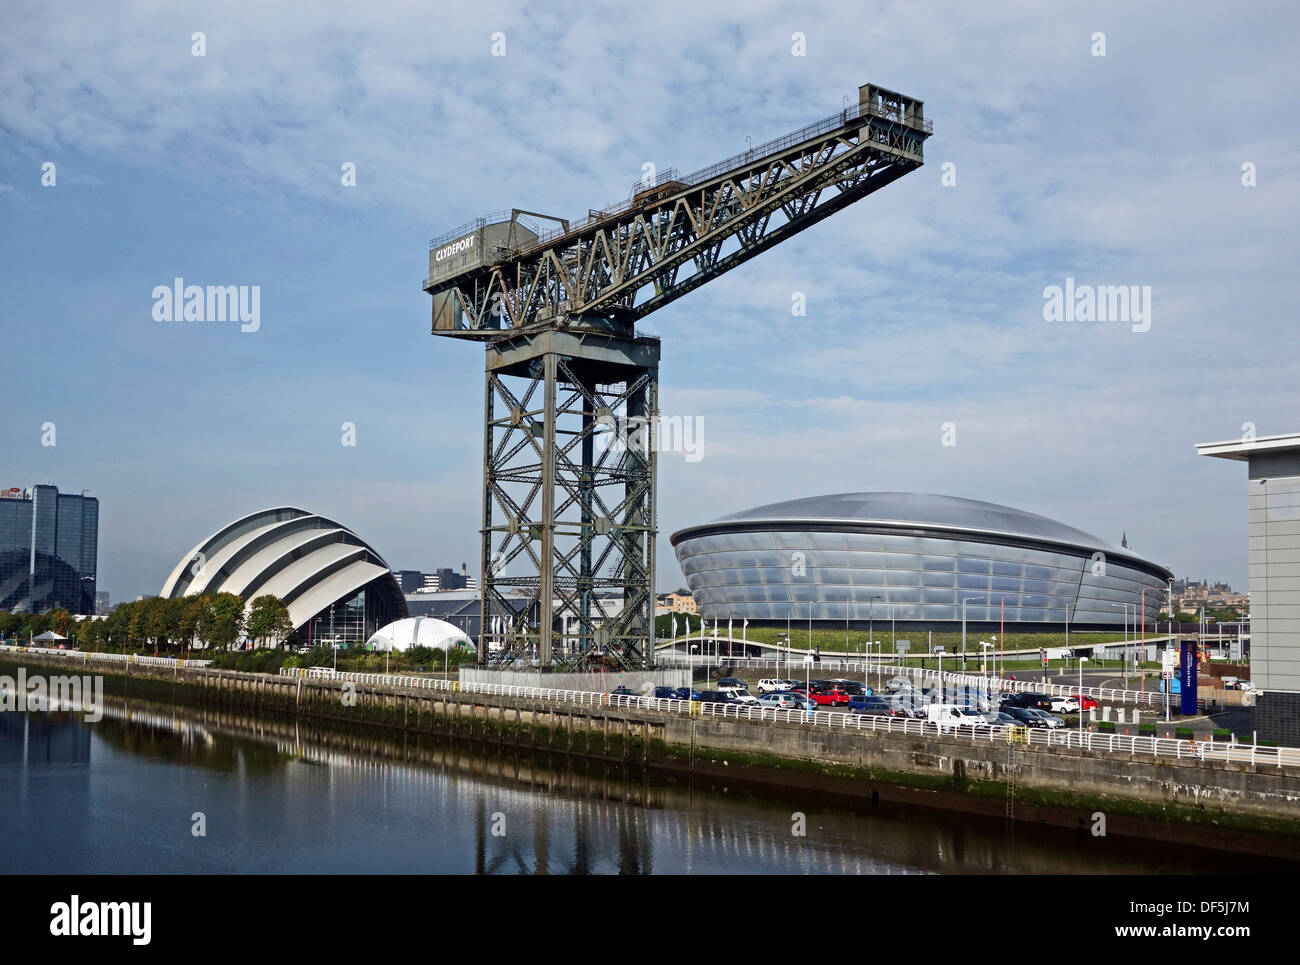 Newly completed SSE The Hydro venue as part of Scottish Exhibition and Conference Centre in Finnieston Glasgow Scotland - Stock Image